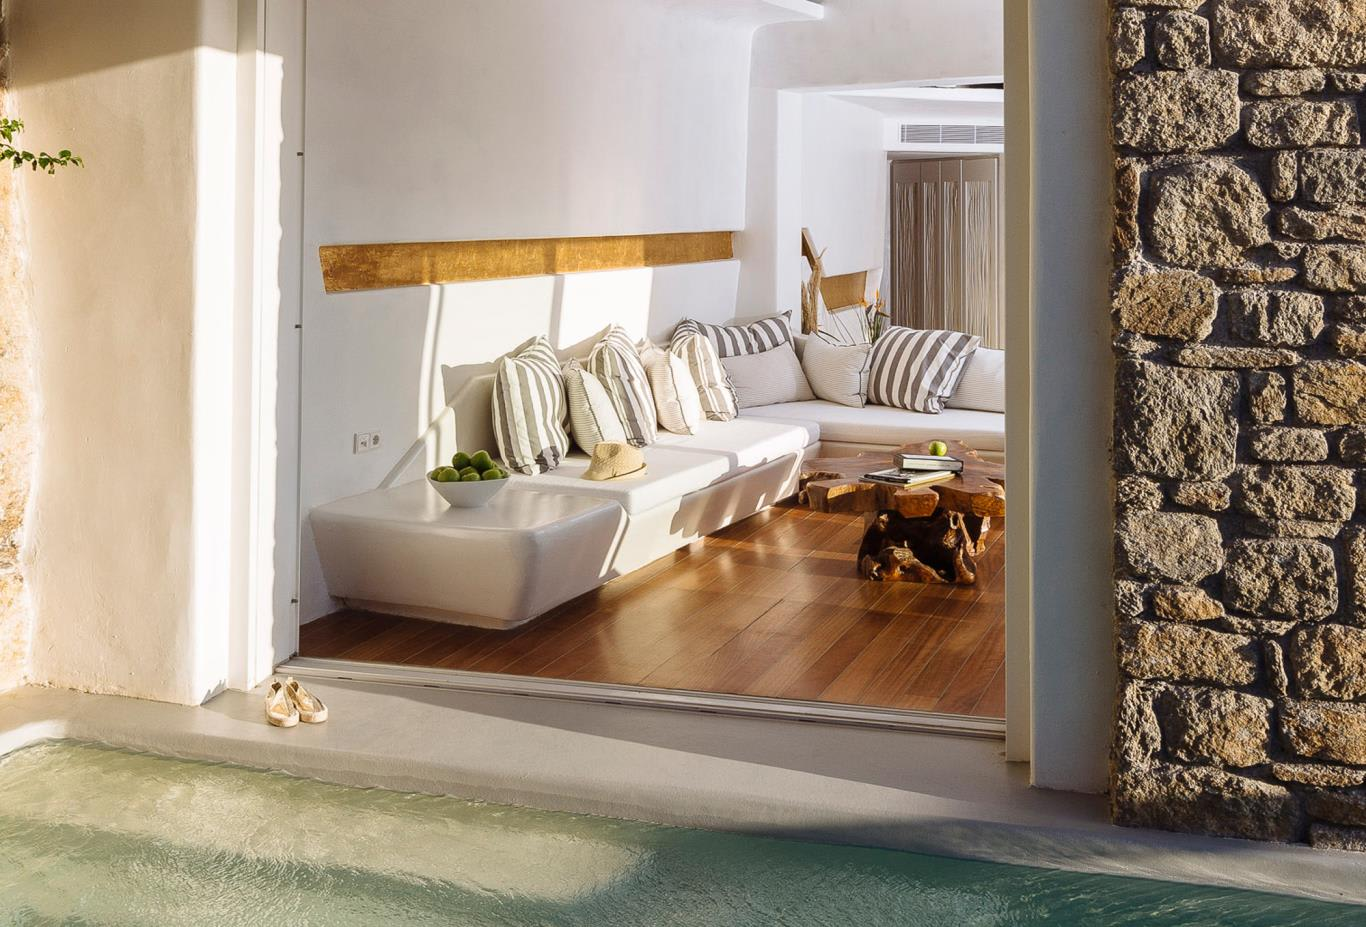 Honeymoon Suite With Pool